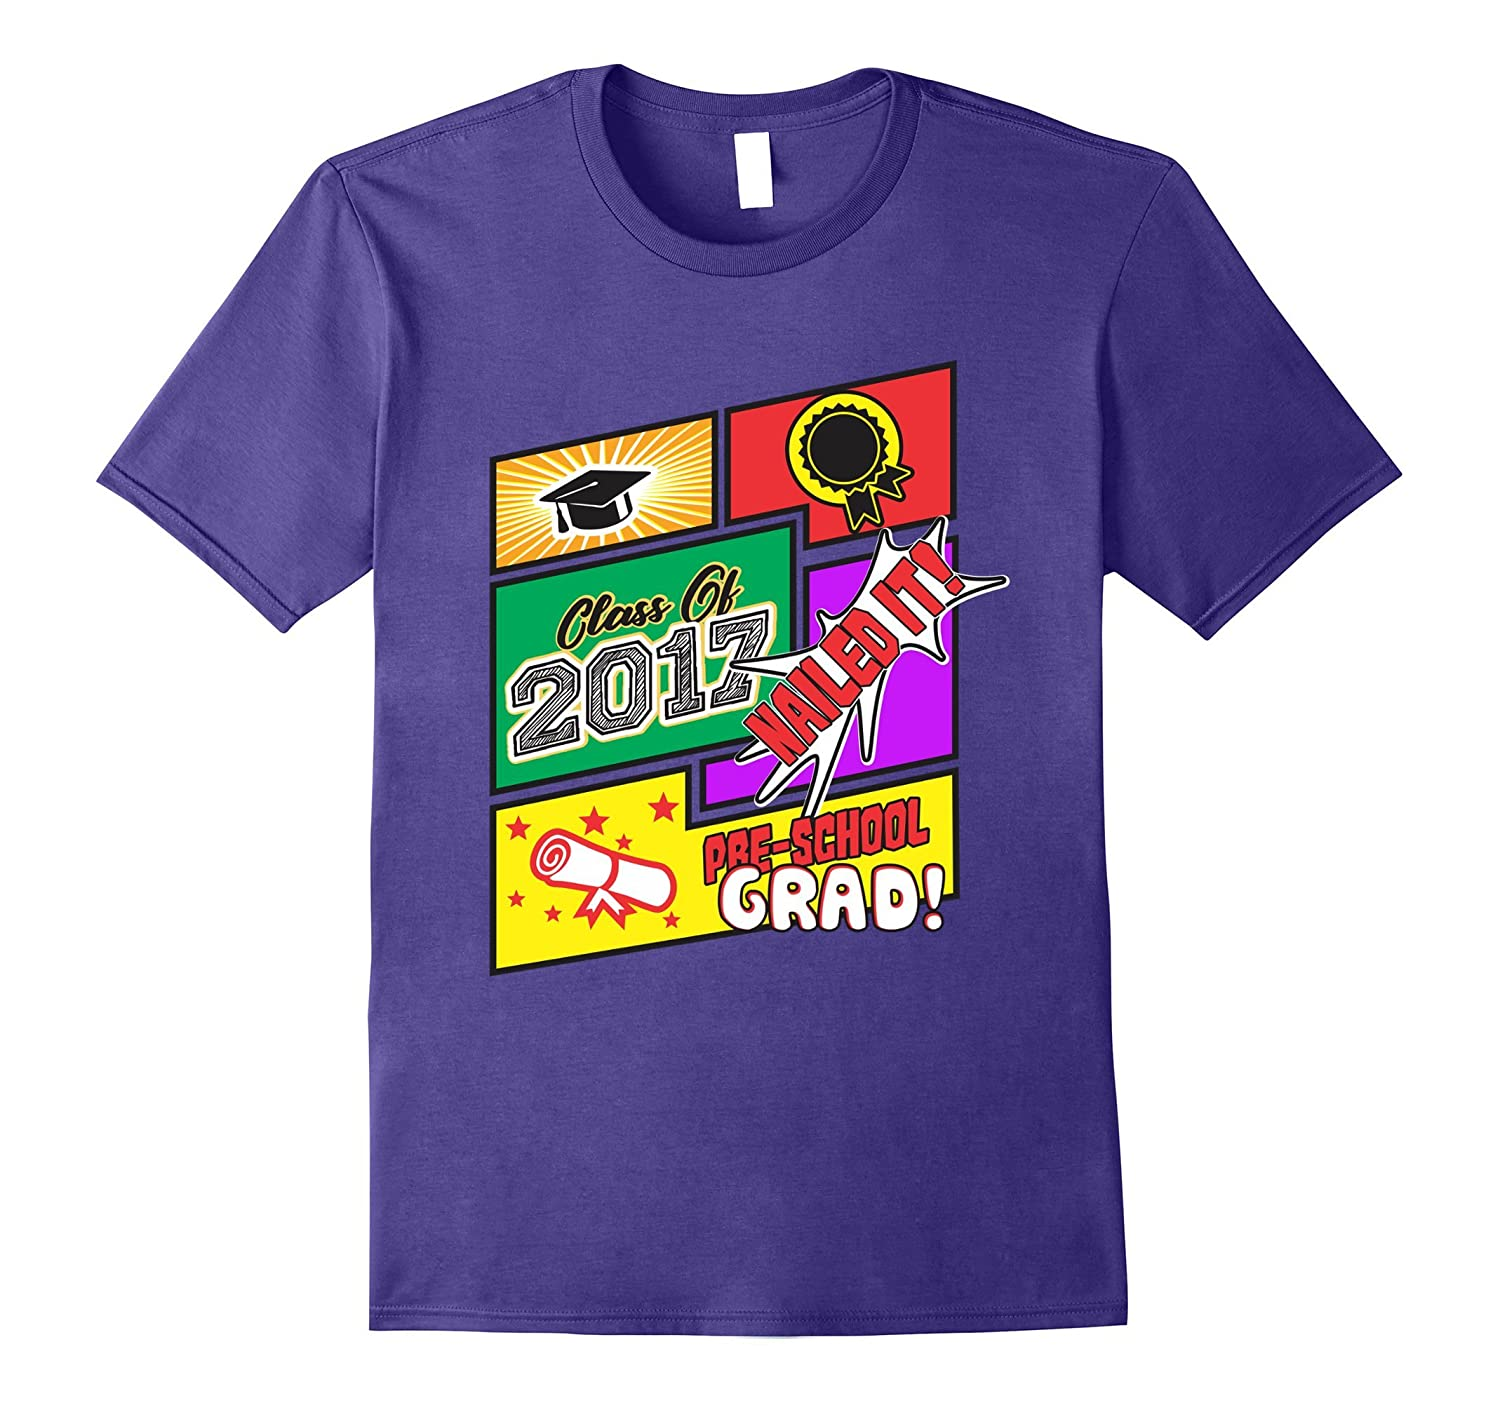 2017 Preschool Graduation T Shirt For Kids Boys Girls Gift-CD